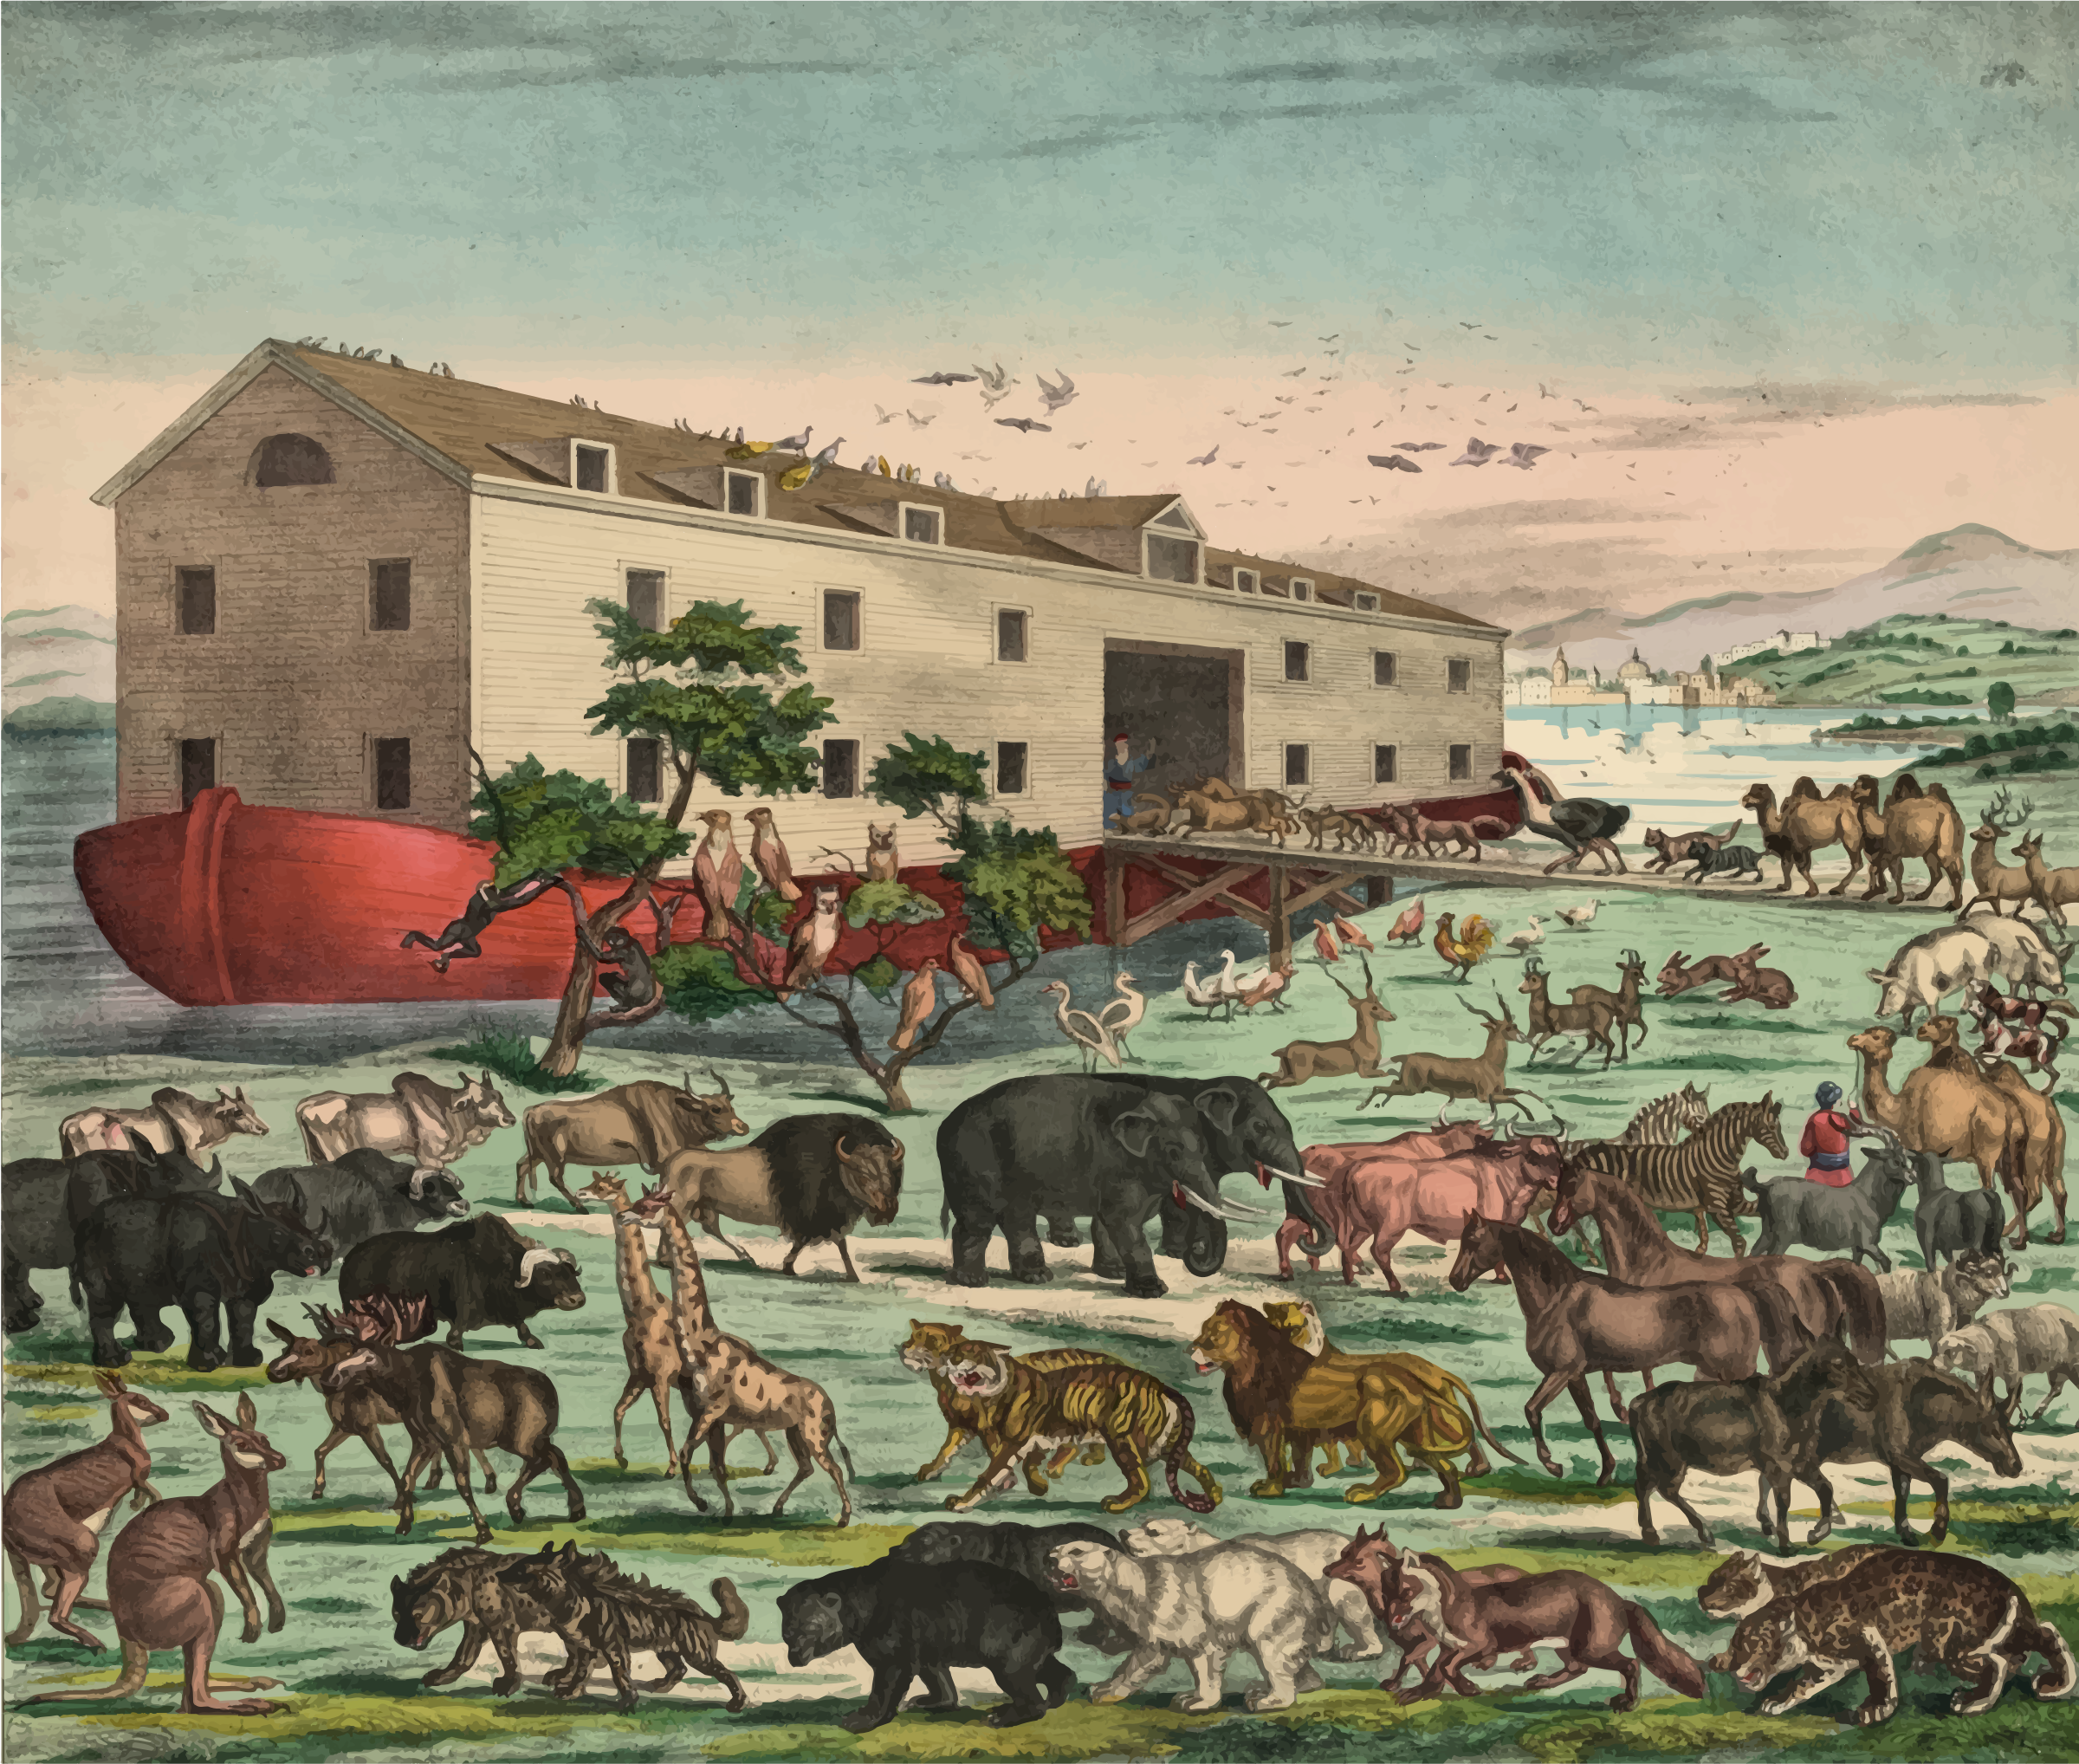 Noah's Ark Illustration by GDJ